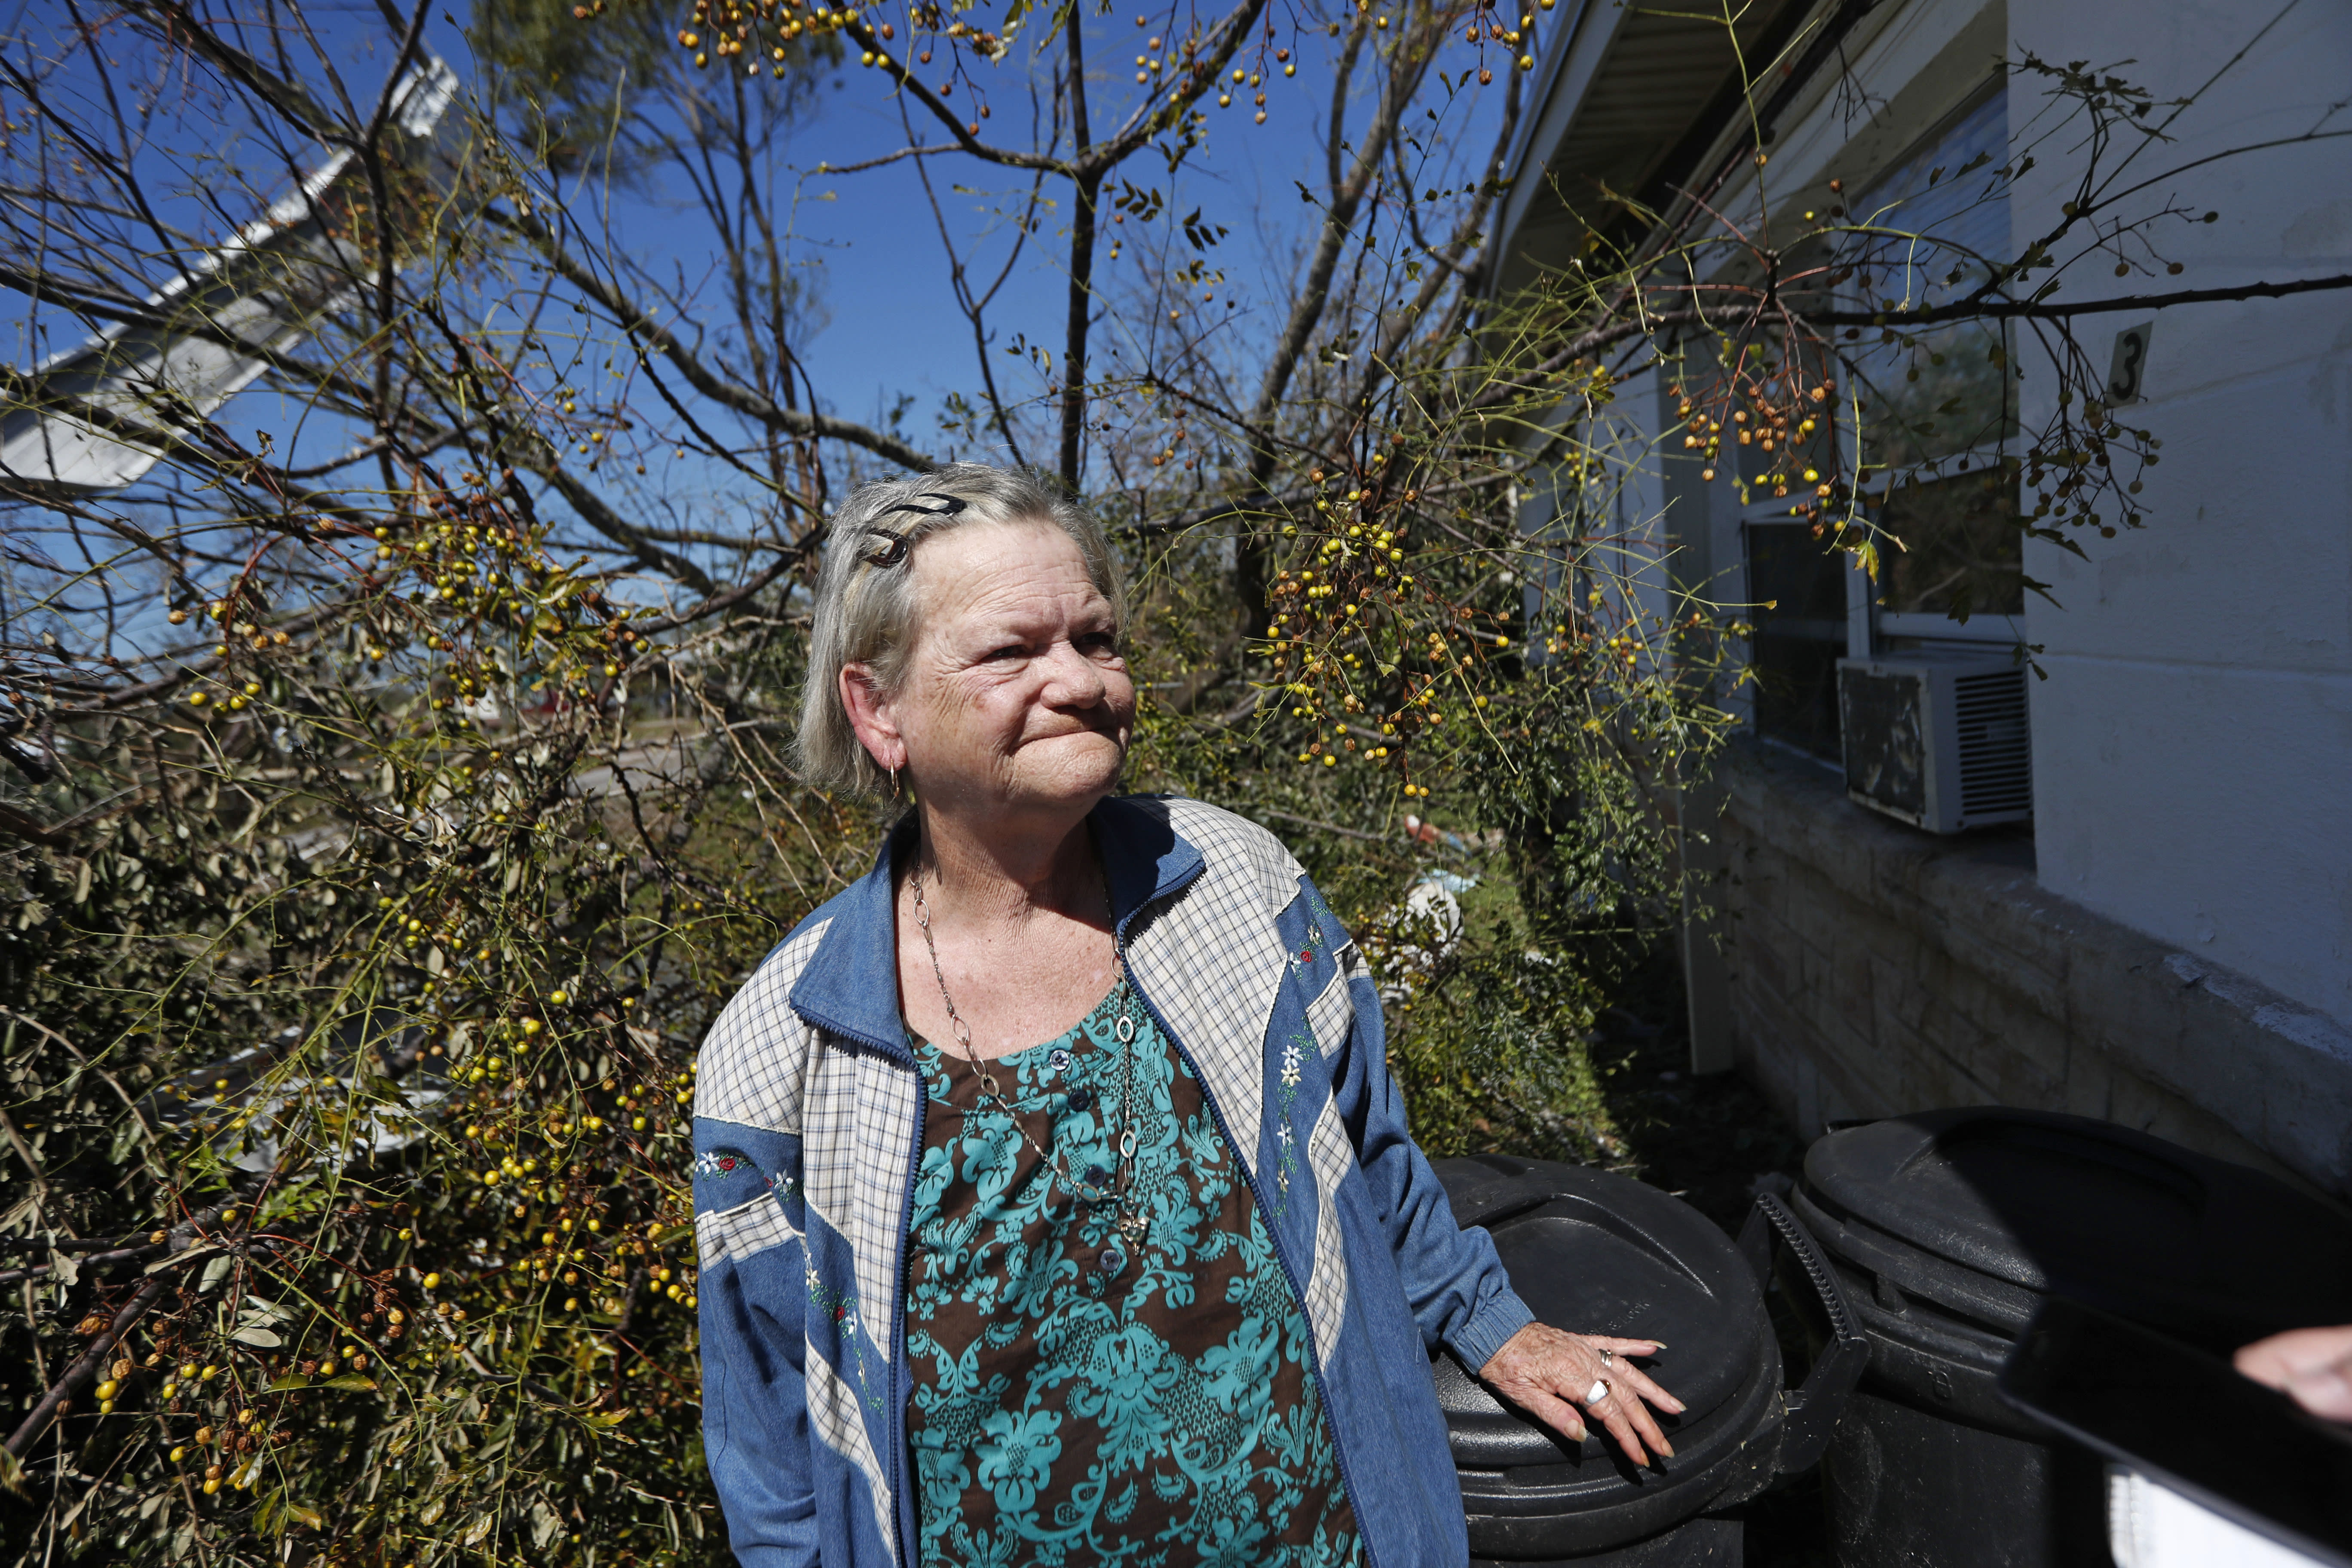 Mary Frances Parrish reacts outside her heavily damaged home, in the aftermath of Hurricane Michael in Panama City, Fla., Saturday, Oct. 13, 2018. She didn't leave the storm because her car was broken down, she didn't have a place to go and if she did she didn't have the money for it. She is caring for her terminally ill son who lives with her. (AP Photo/Gerald Herbert)